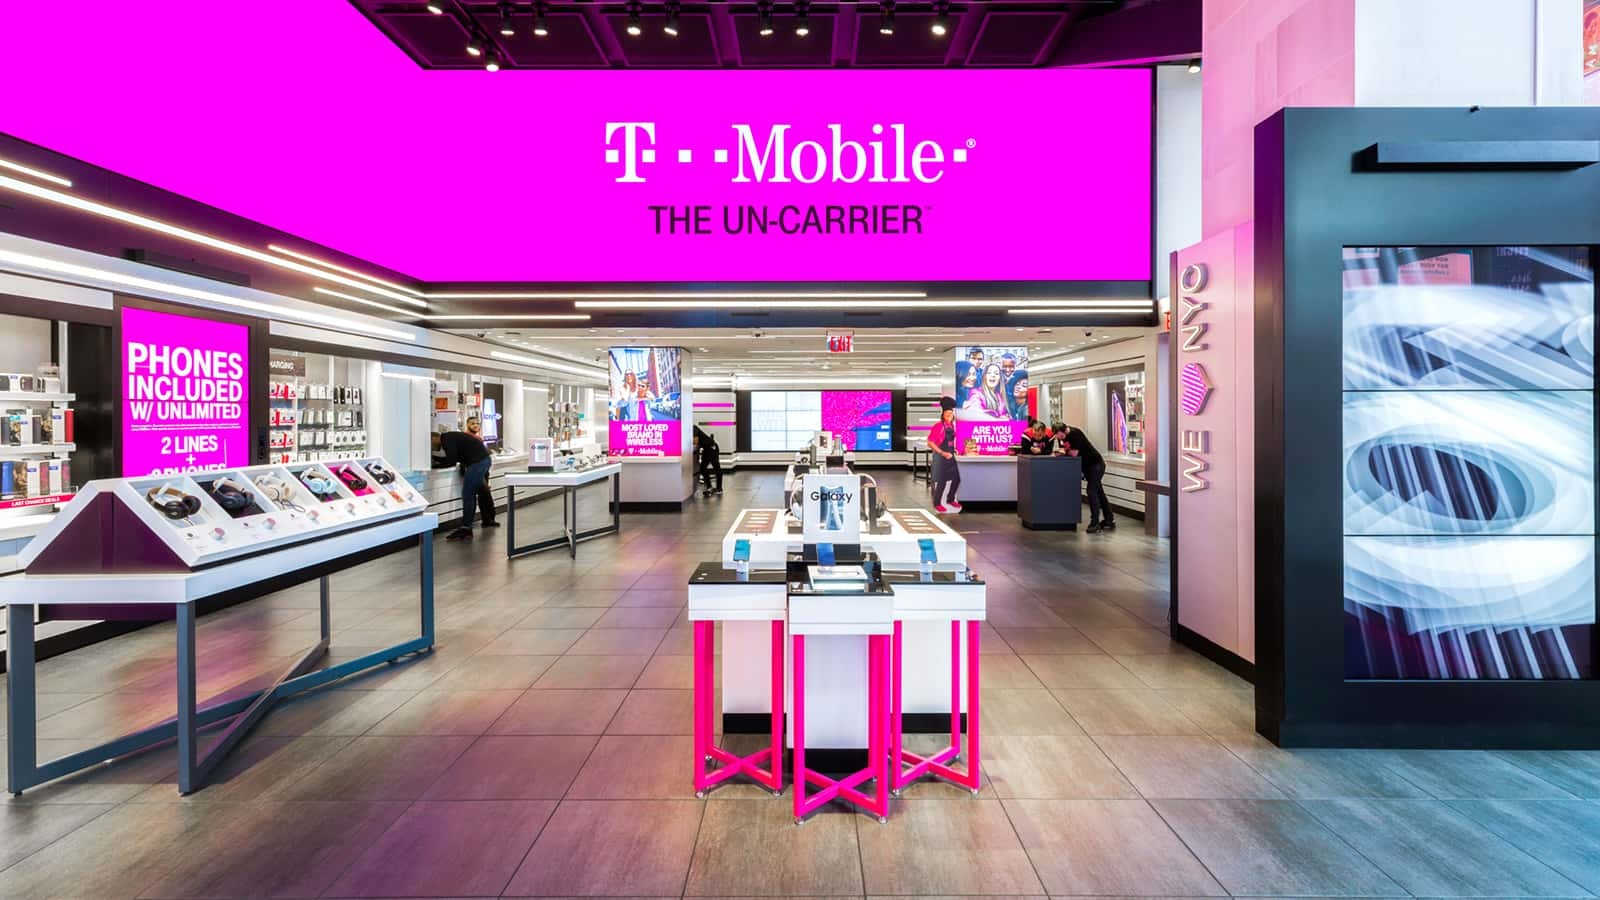 The T-Mobile Samsung Galaxy S10 displays match the look and feel of each store.